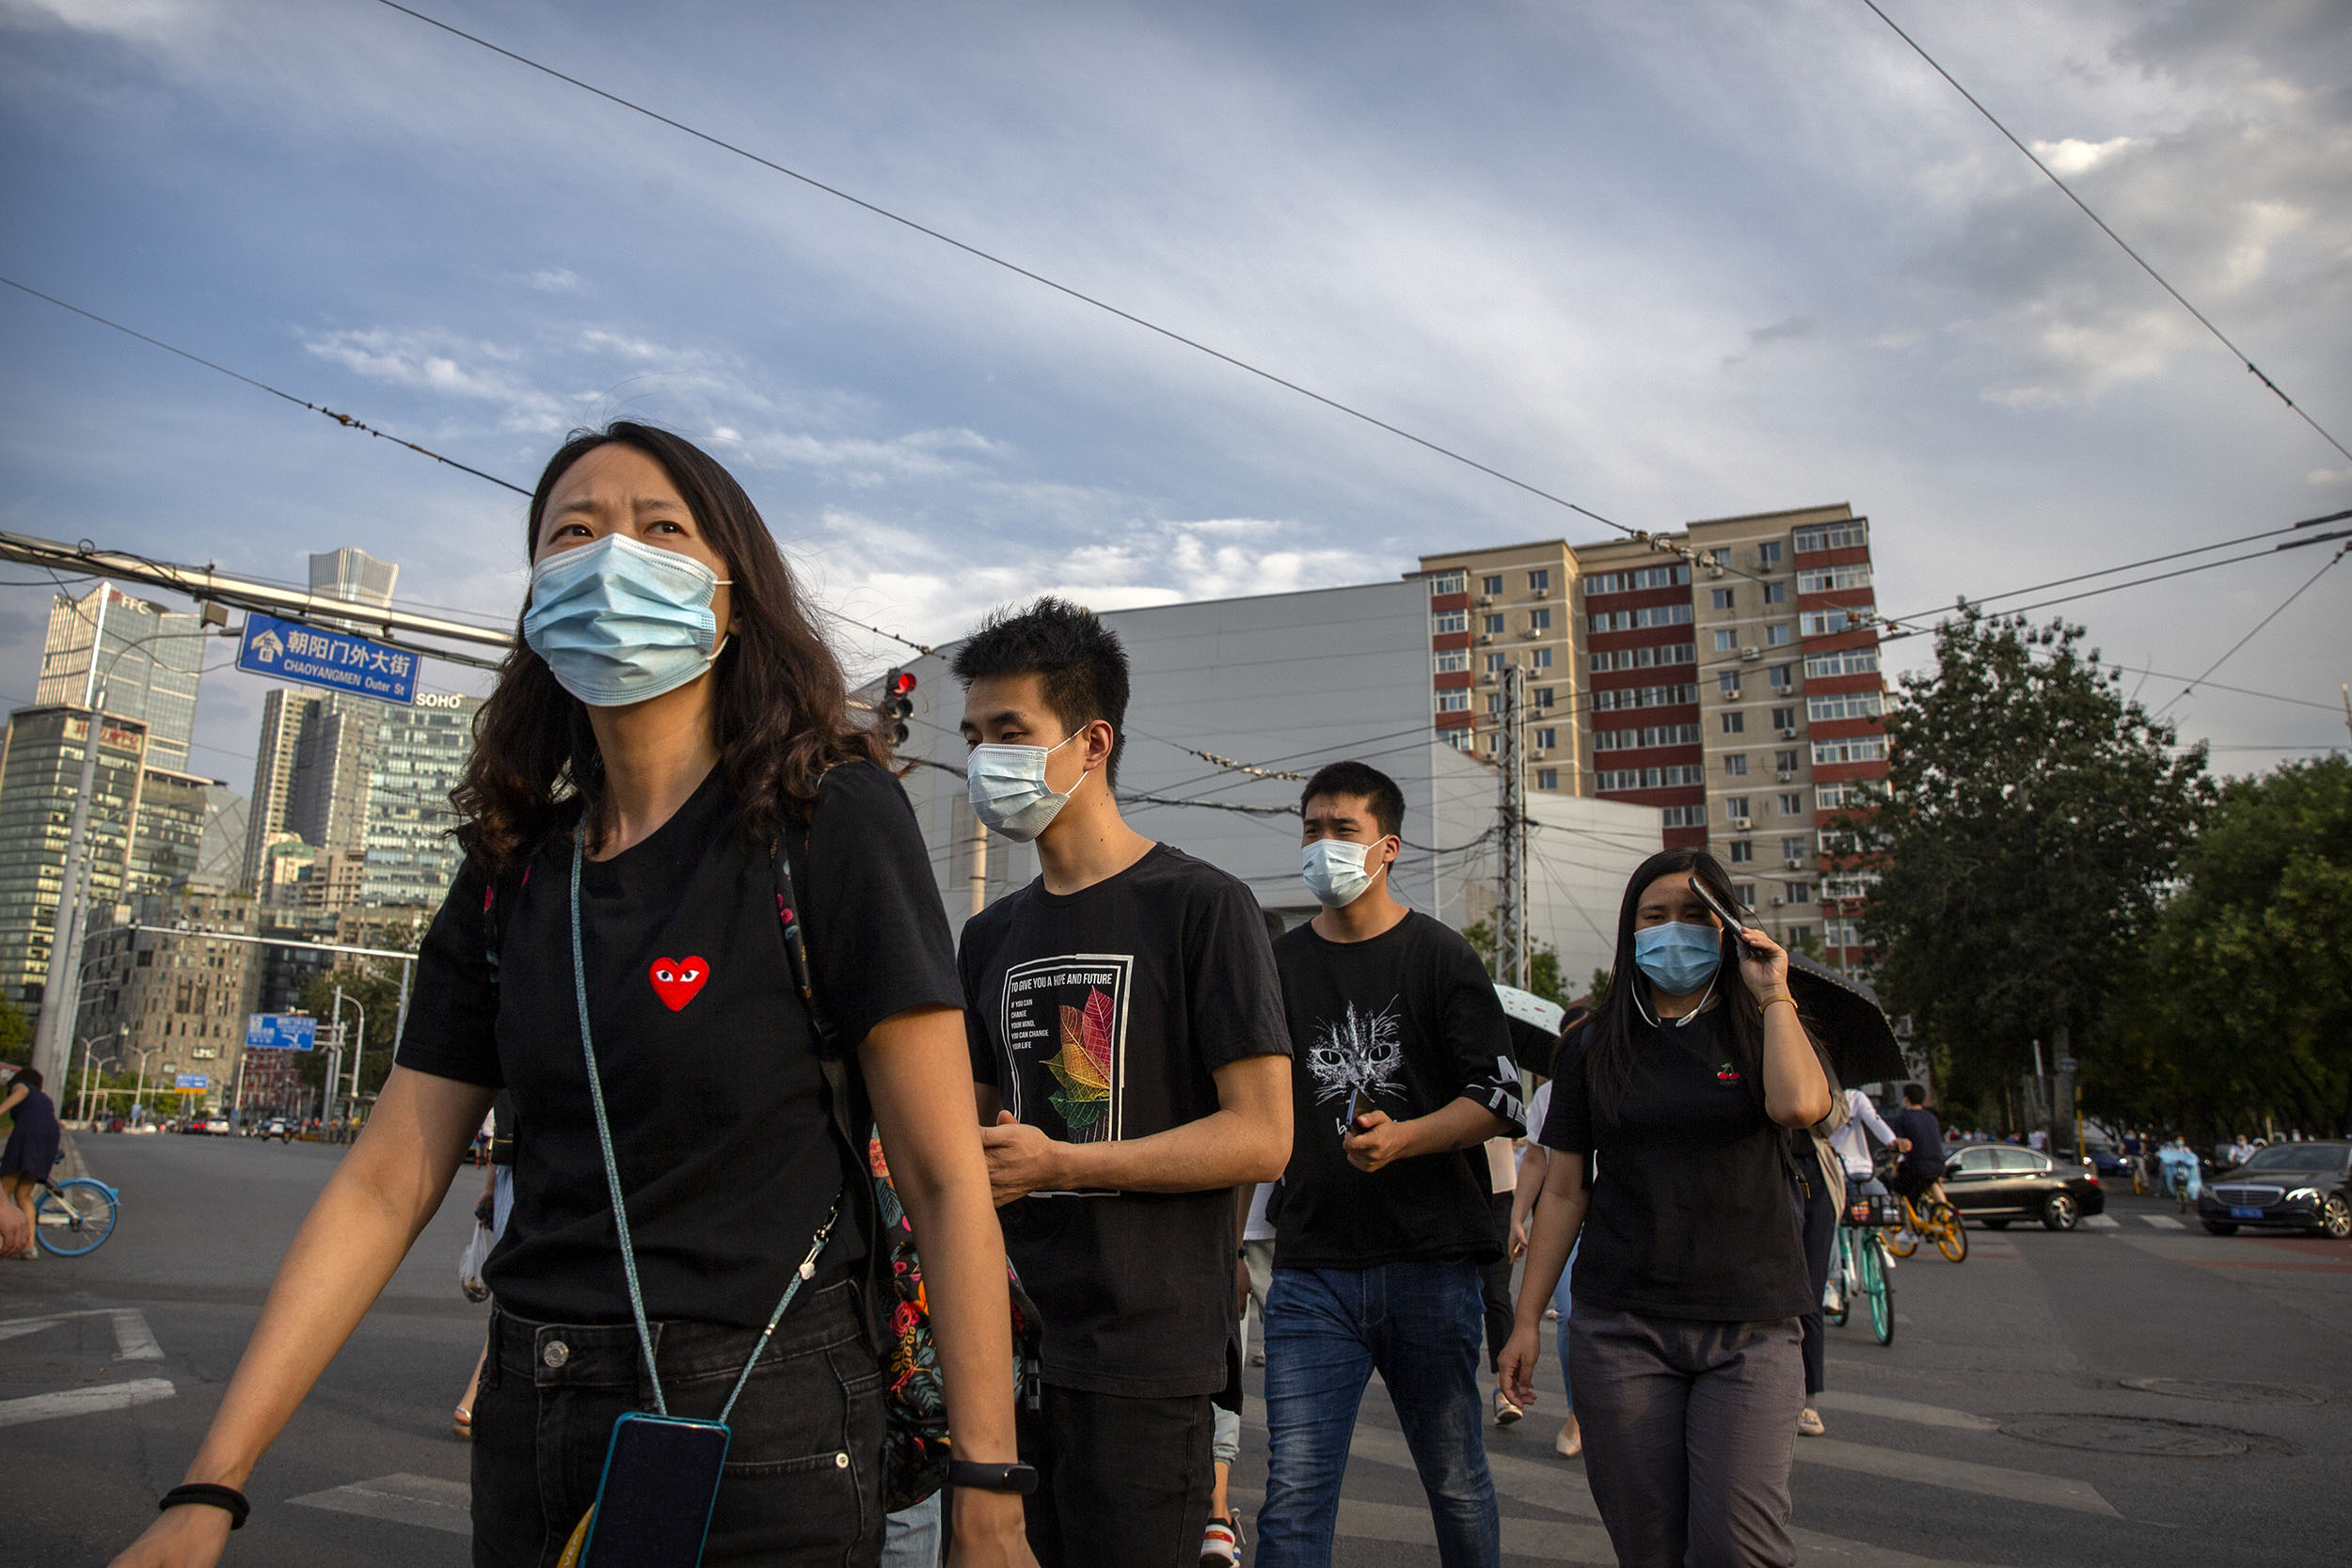 People wearing face masks to help protect against the spread of the coronavirus cross an intersection in Beijing, China, on Tuesday, August 4.